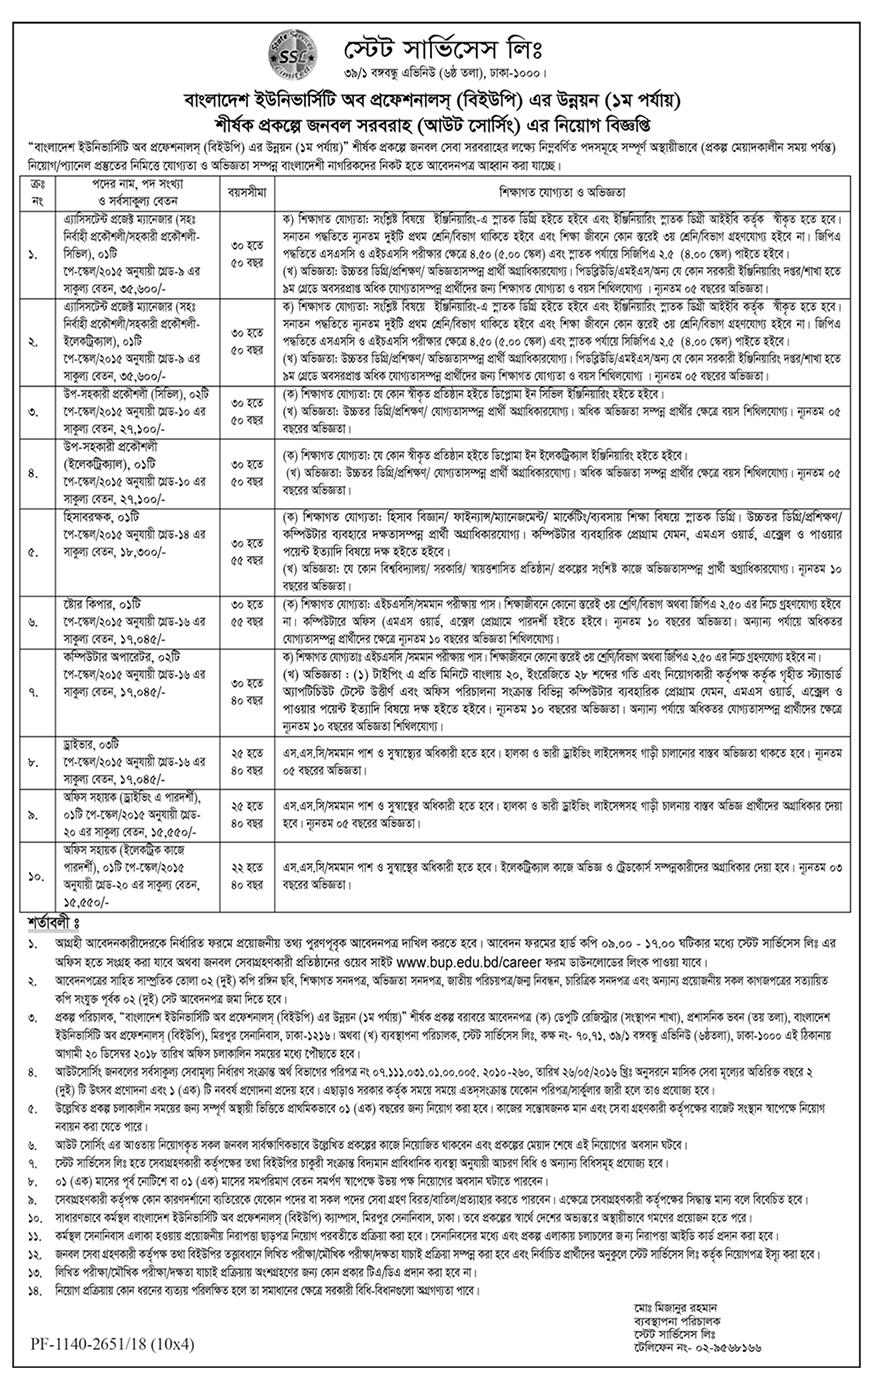 Bangladesh University of Professionals (BUP) Job Circular 2018